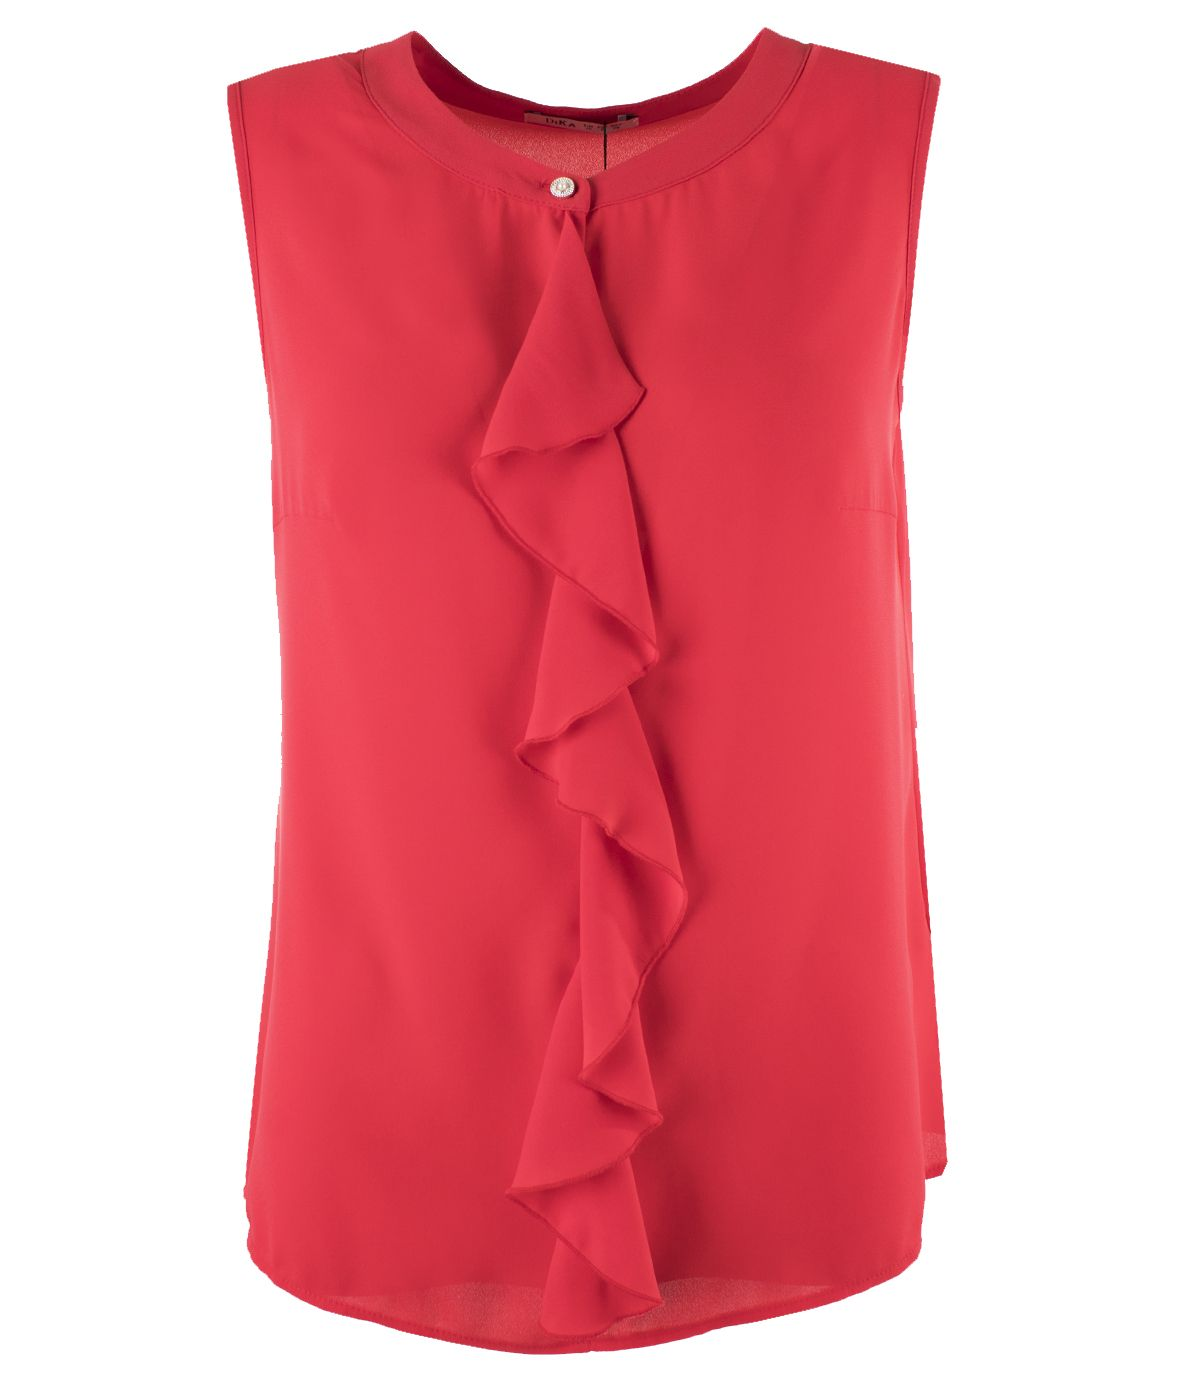 Sleeveless blouse with decorative front flounce 0